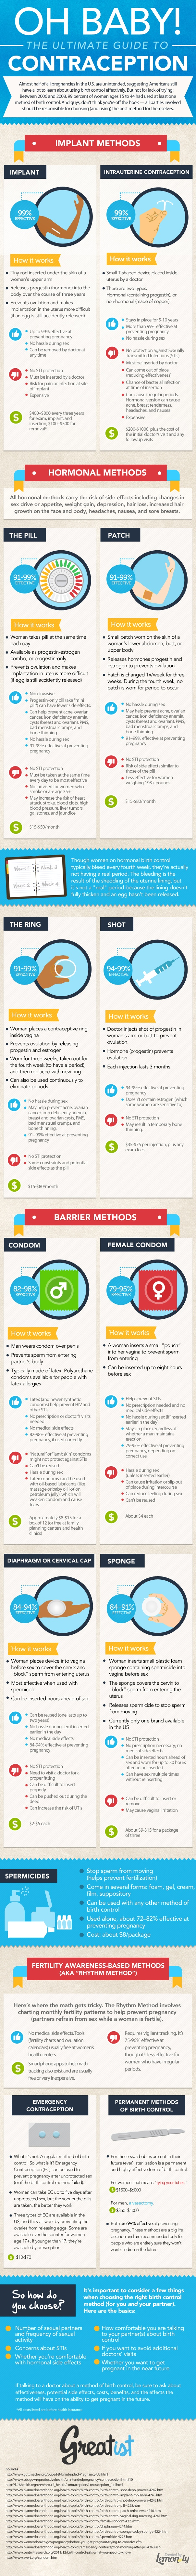 The-Ultimate-Guide-to-Contraception_604